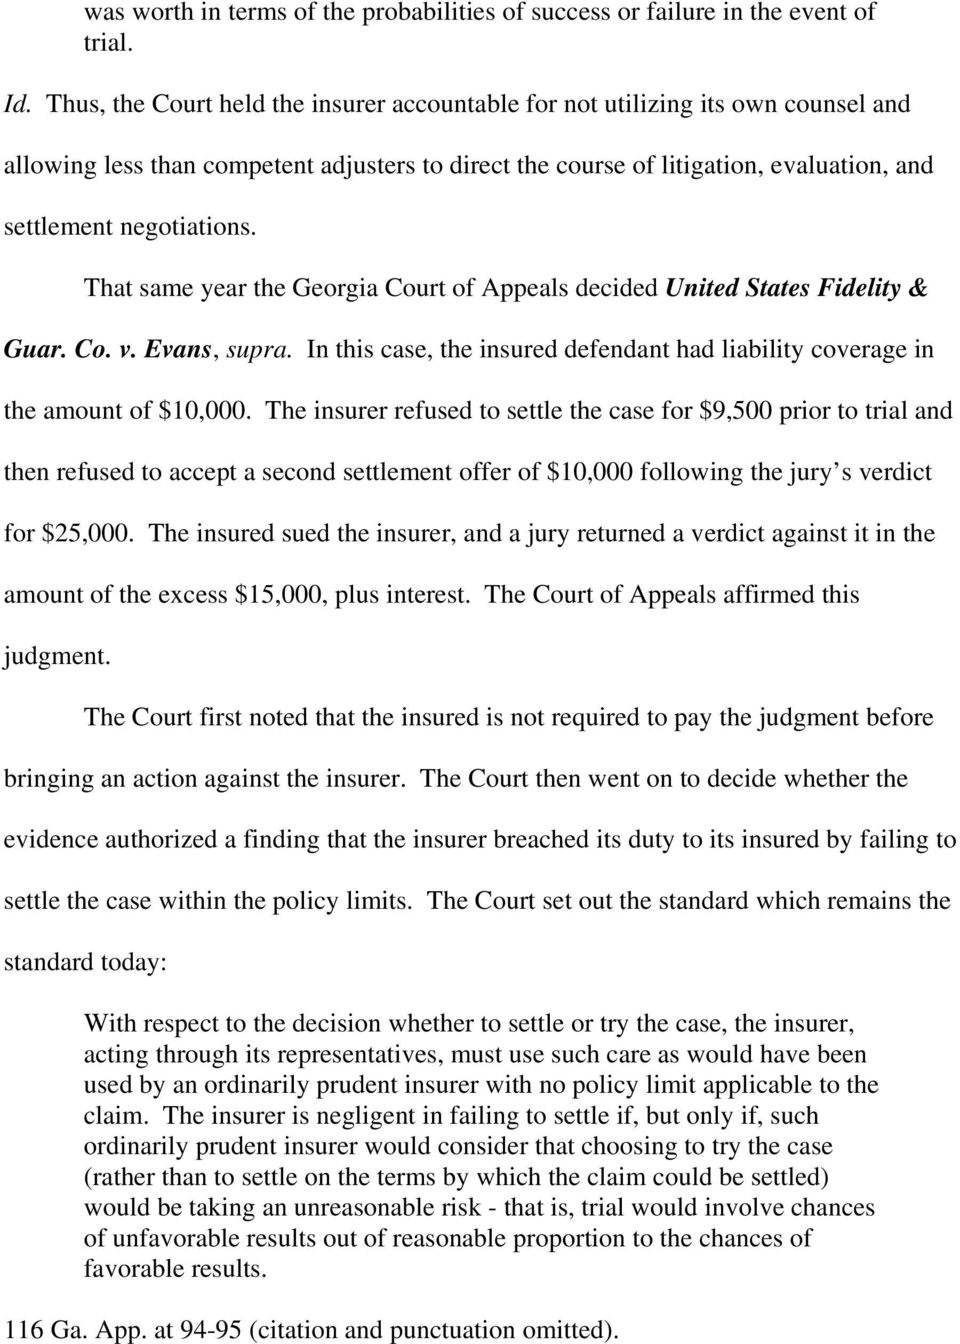 That same year the Georgia Court of Appeals decided United States Fidelity & Guar. Co. v. Evans, supra. In this case, the insured defendant had liability coverage in the amount of $10,000.